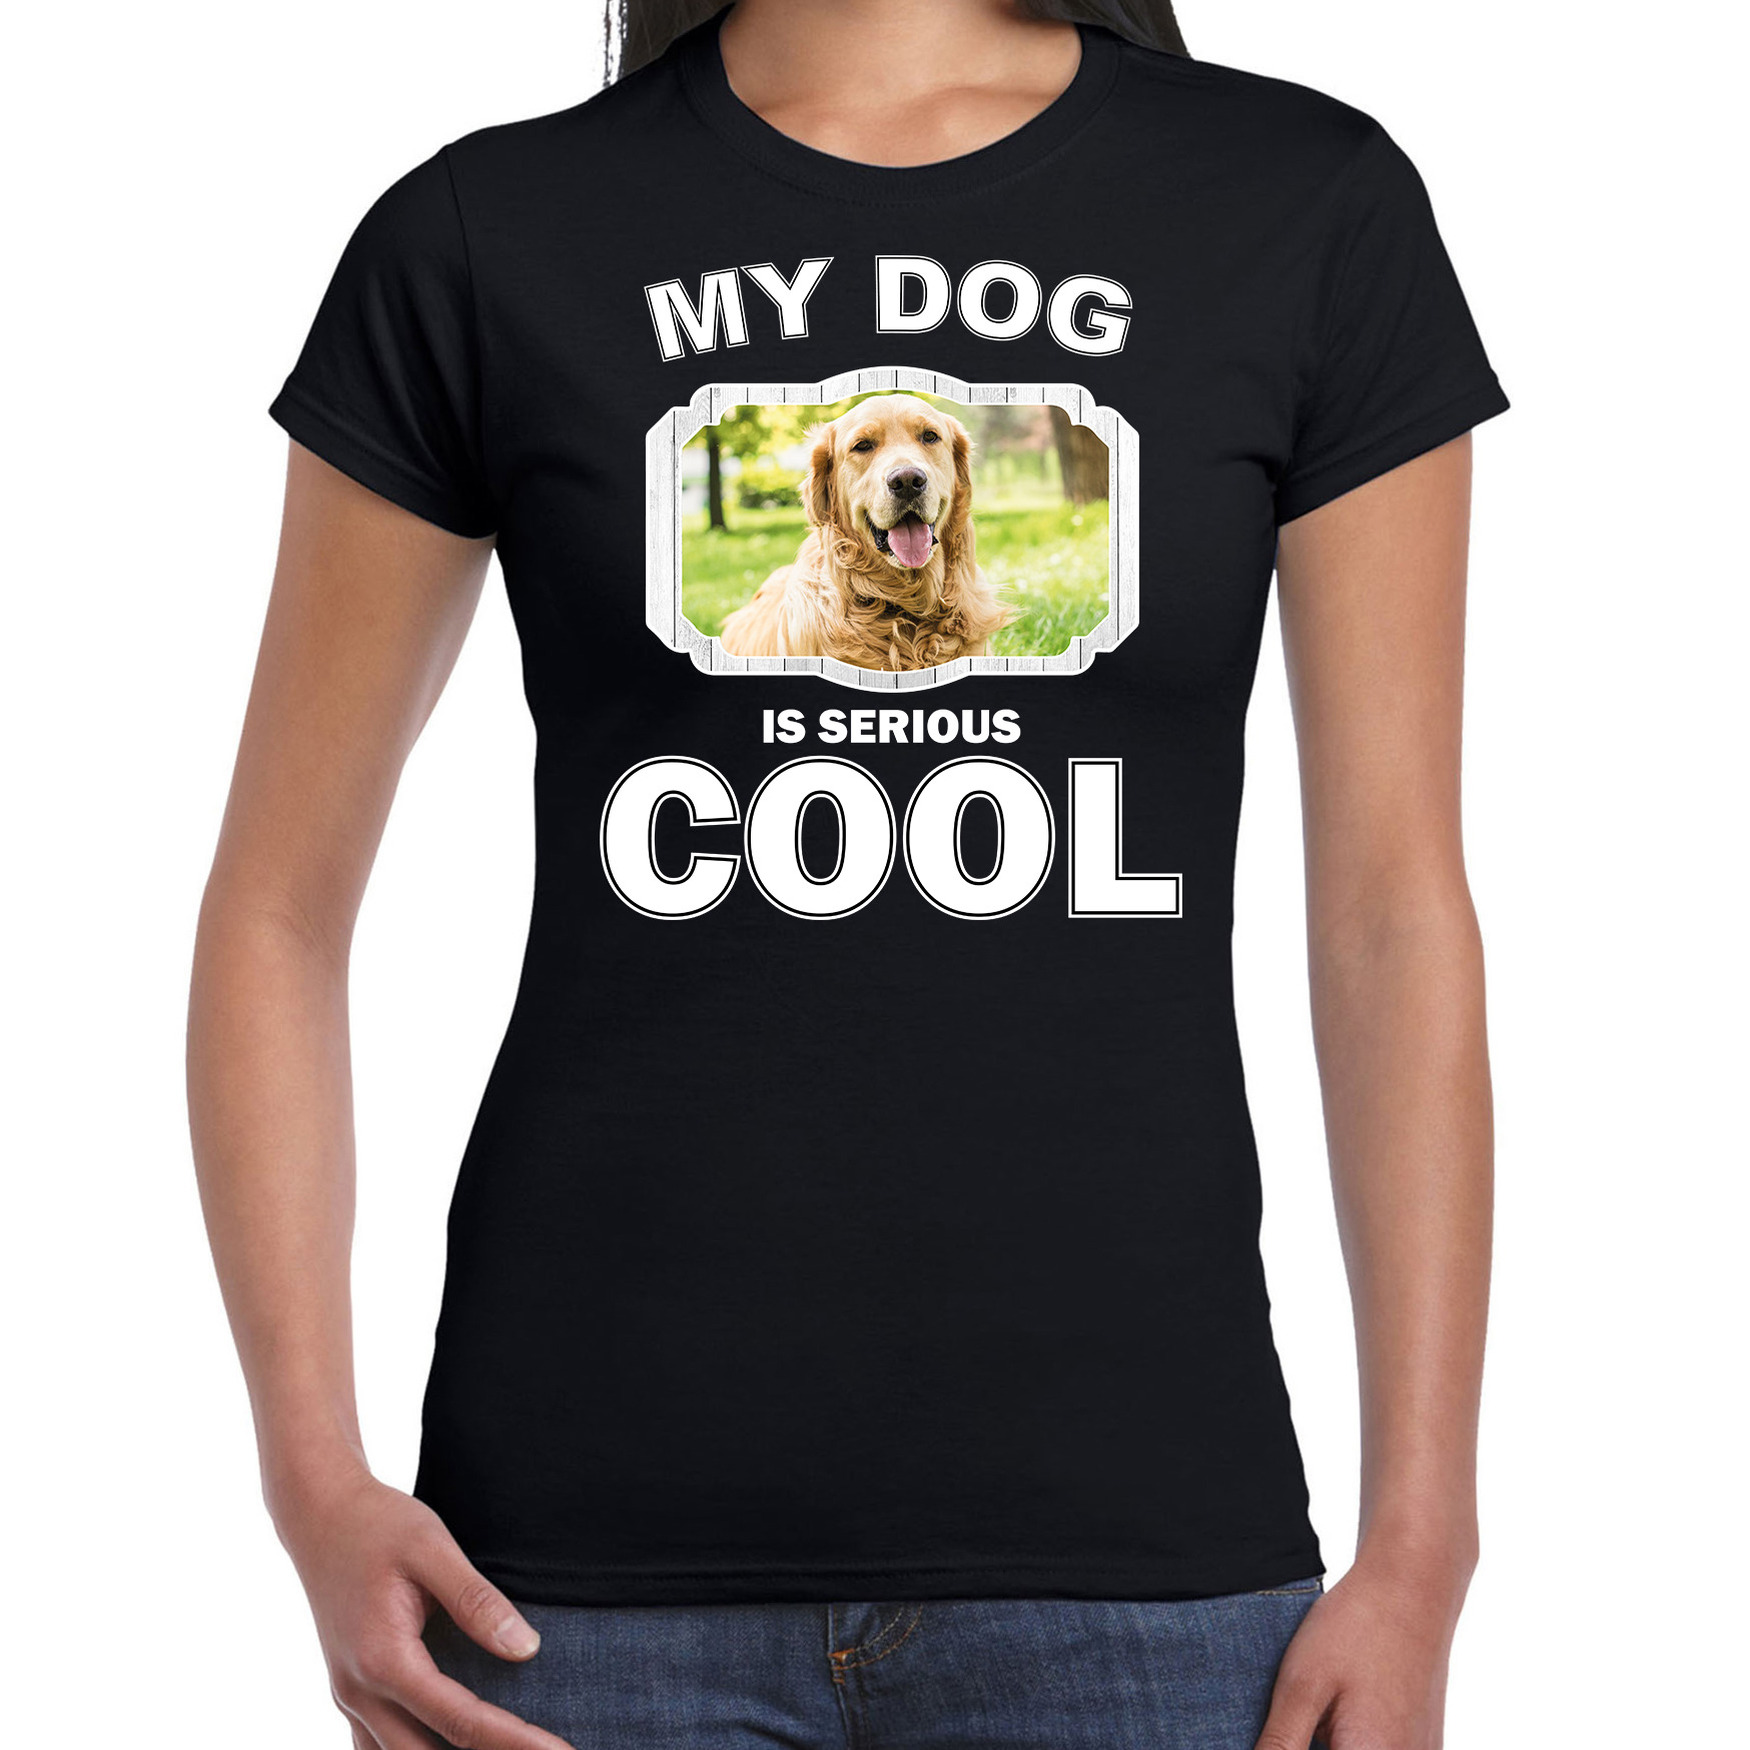 Honden liefhebber shirt Golden retriever my dog is serious cool zwart voor dames